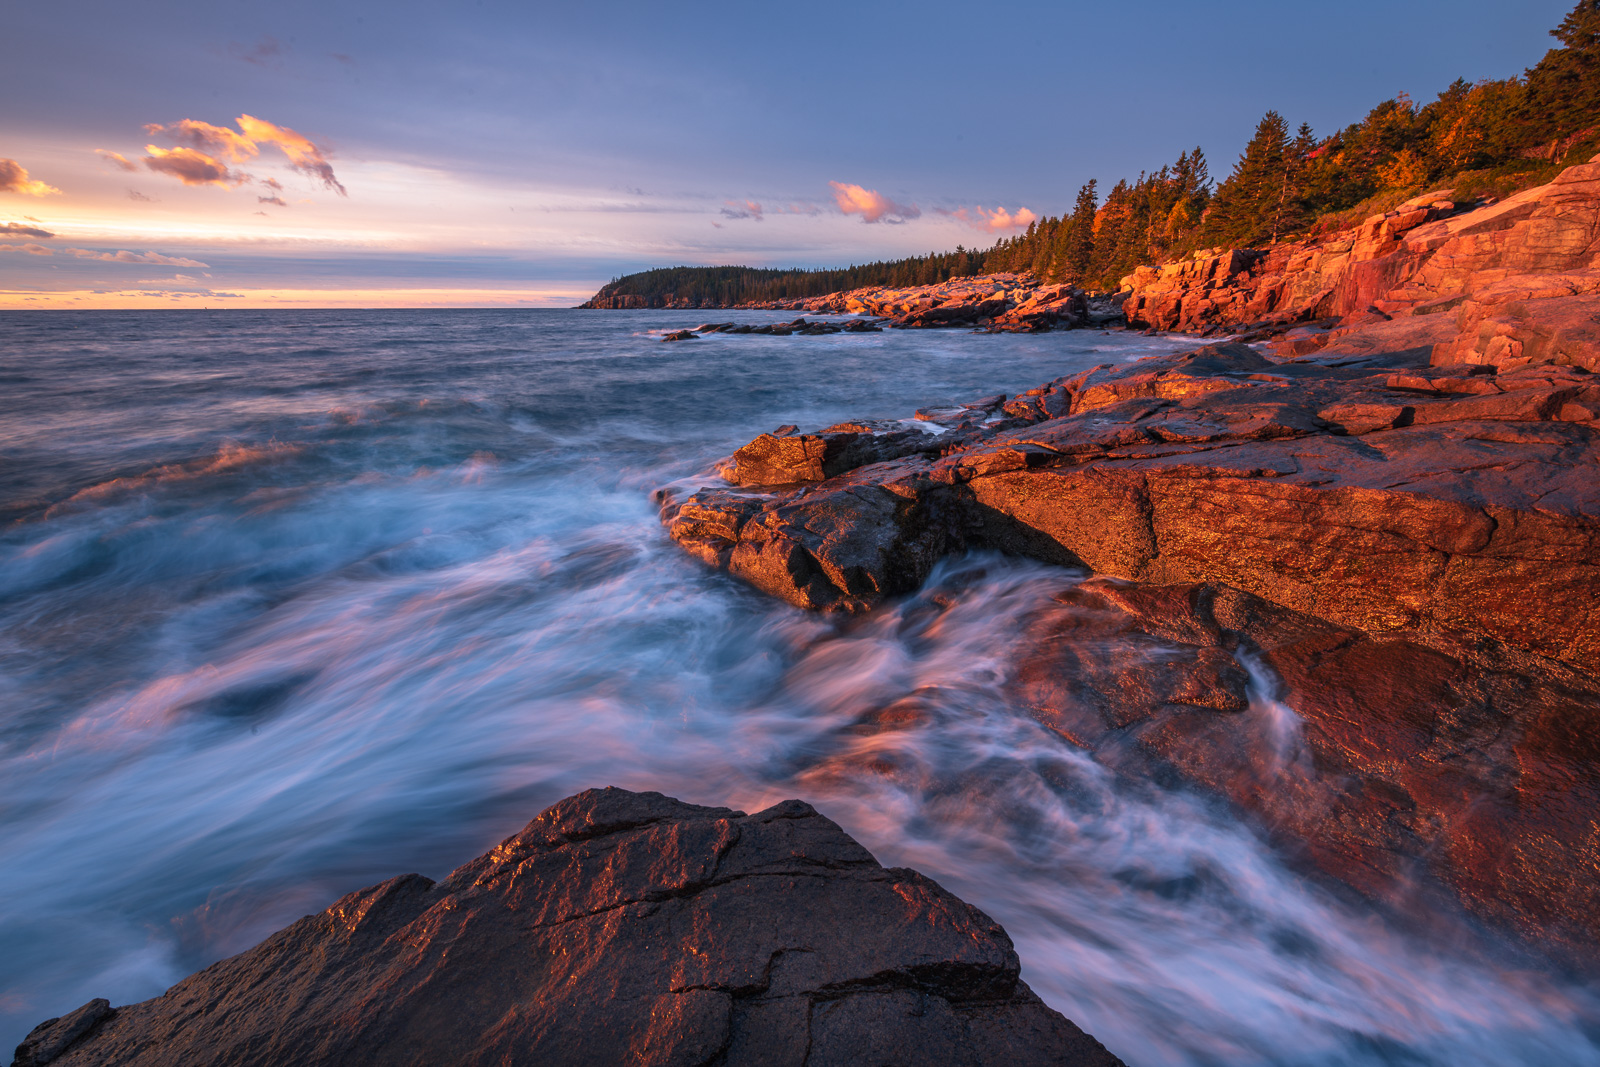 Breaking waves and first light paint Acadia's rugged coastline from Thunderhole.